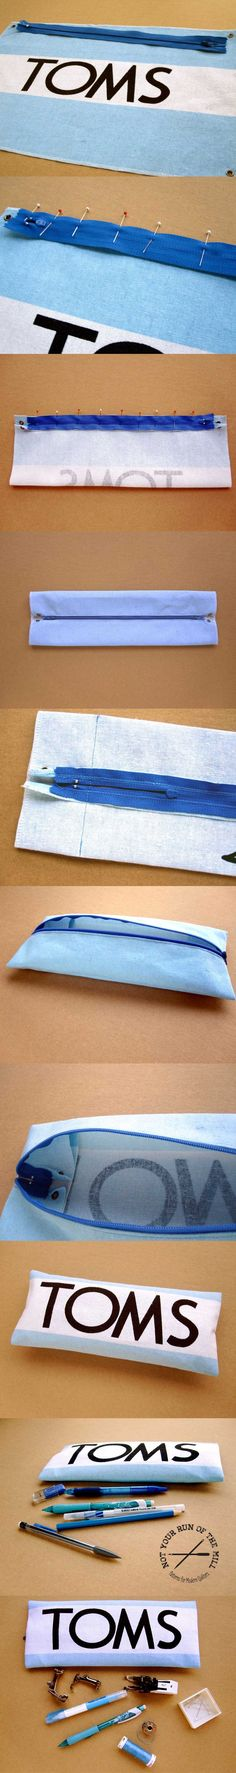 Make a Toms flag zippered pouch.